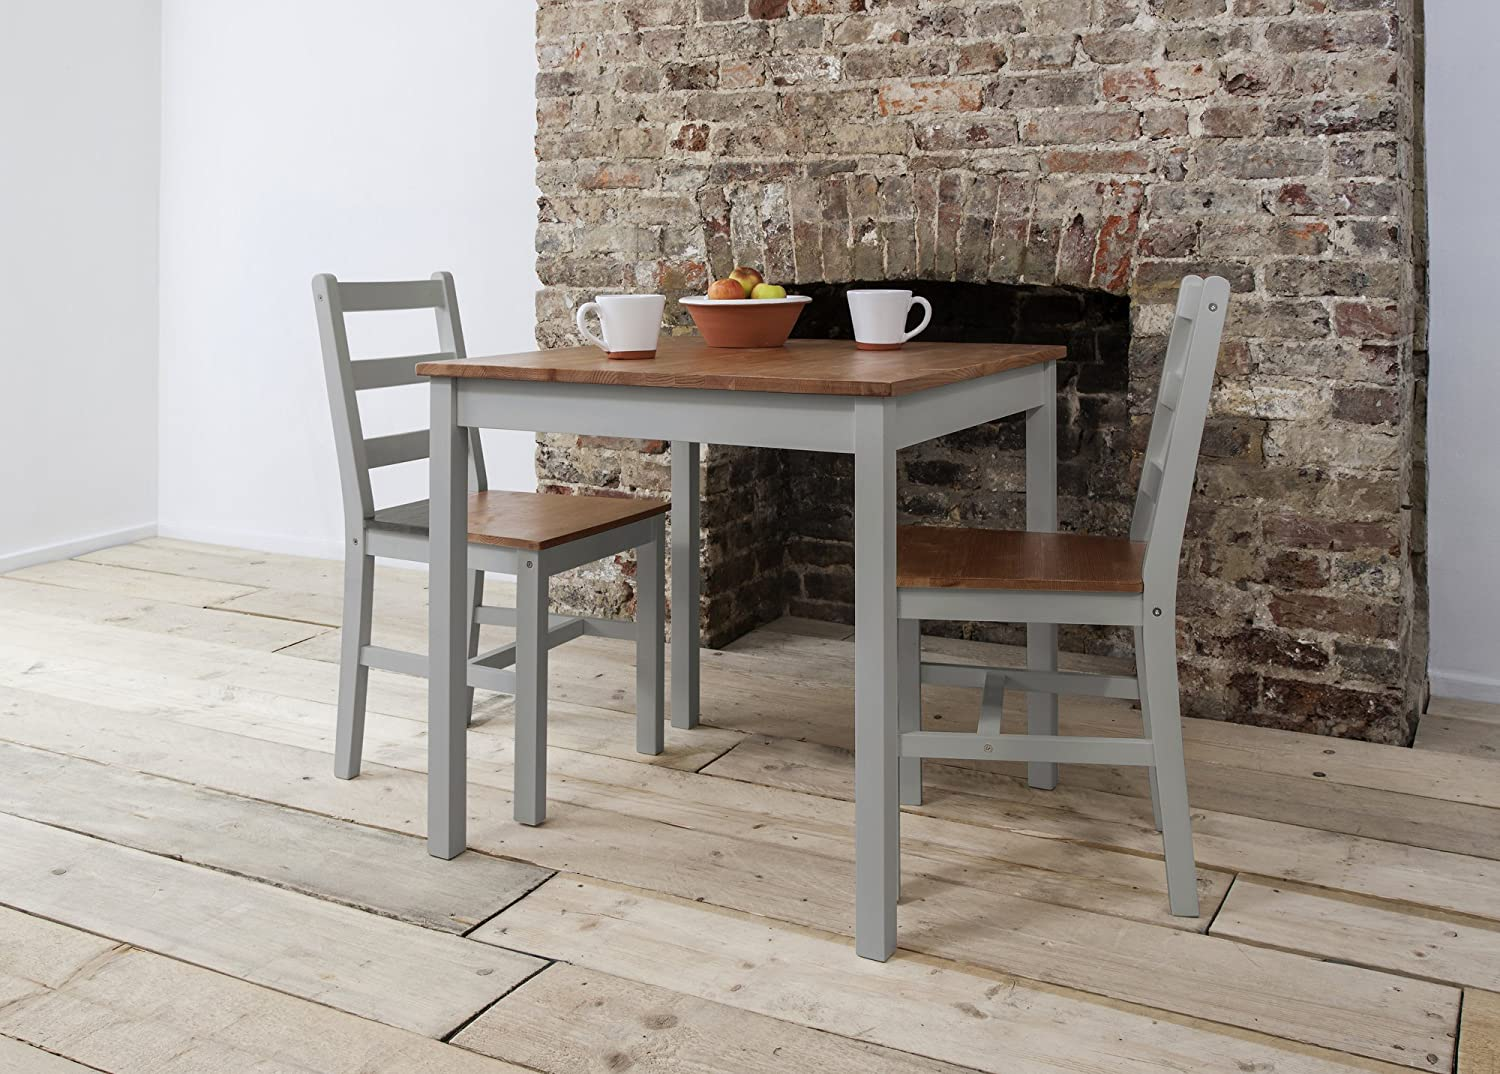 Annika Dining Table And 2 Chairs Bistro Set In Silk Grey And Natural Pine:  Amazon.co.uk: Kitchen U0026 Home